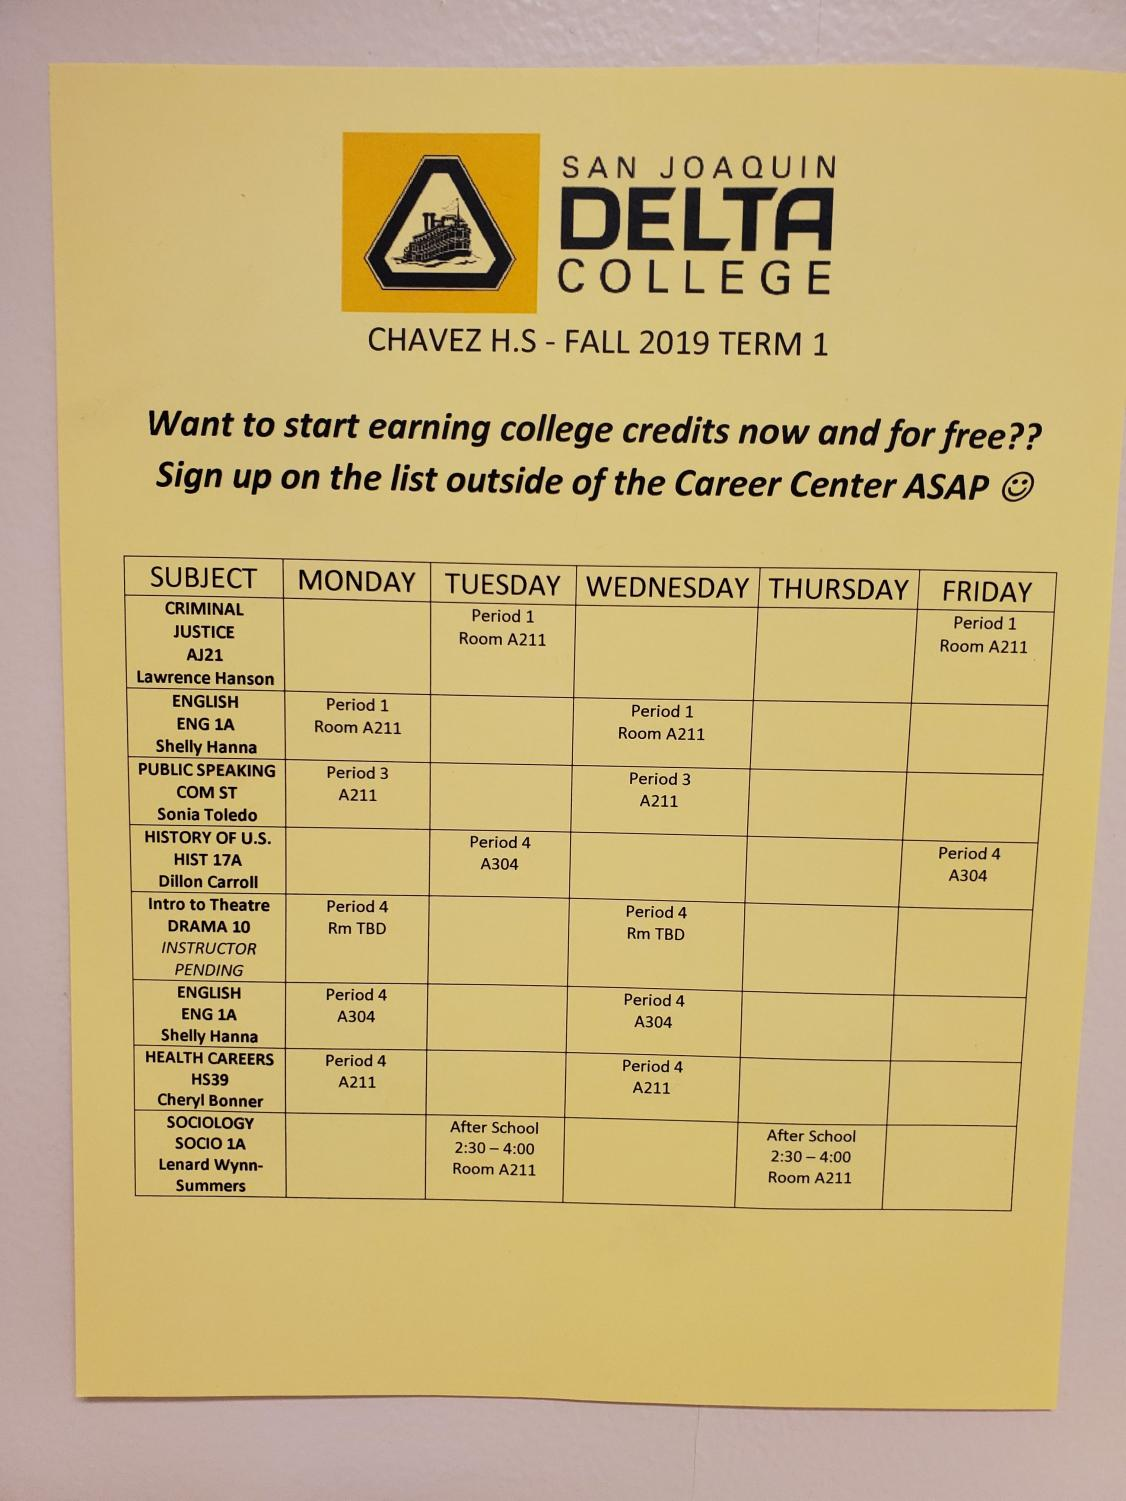 List of courses taught on campus. The days and times are provided for each offering.